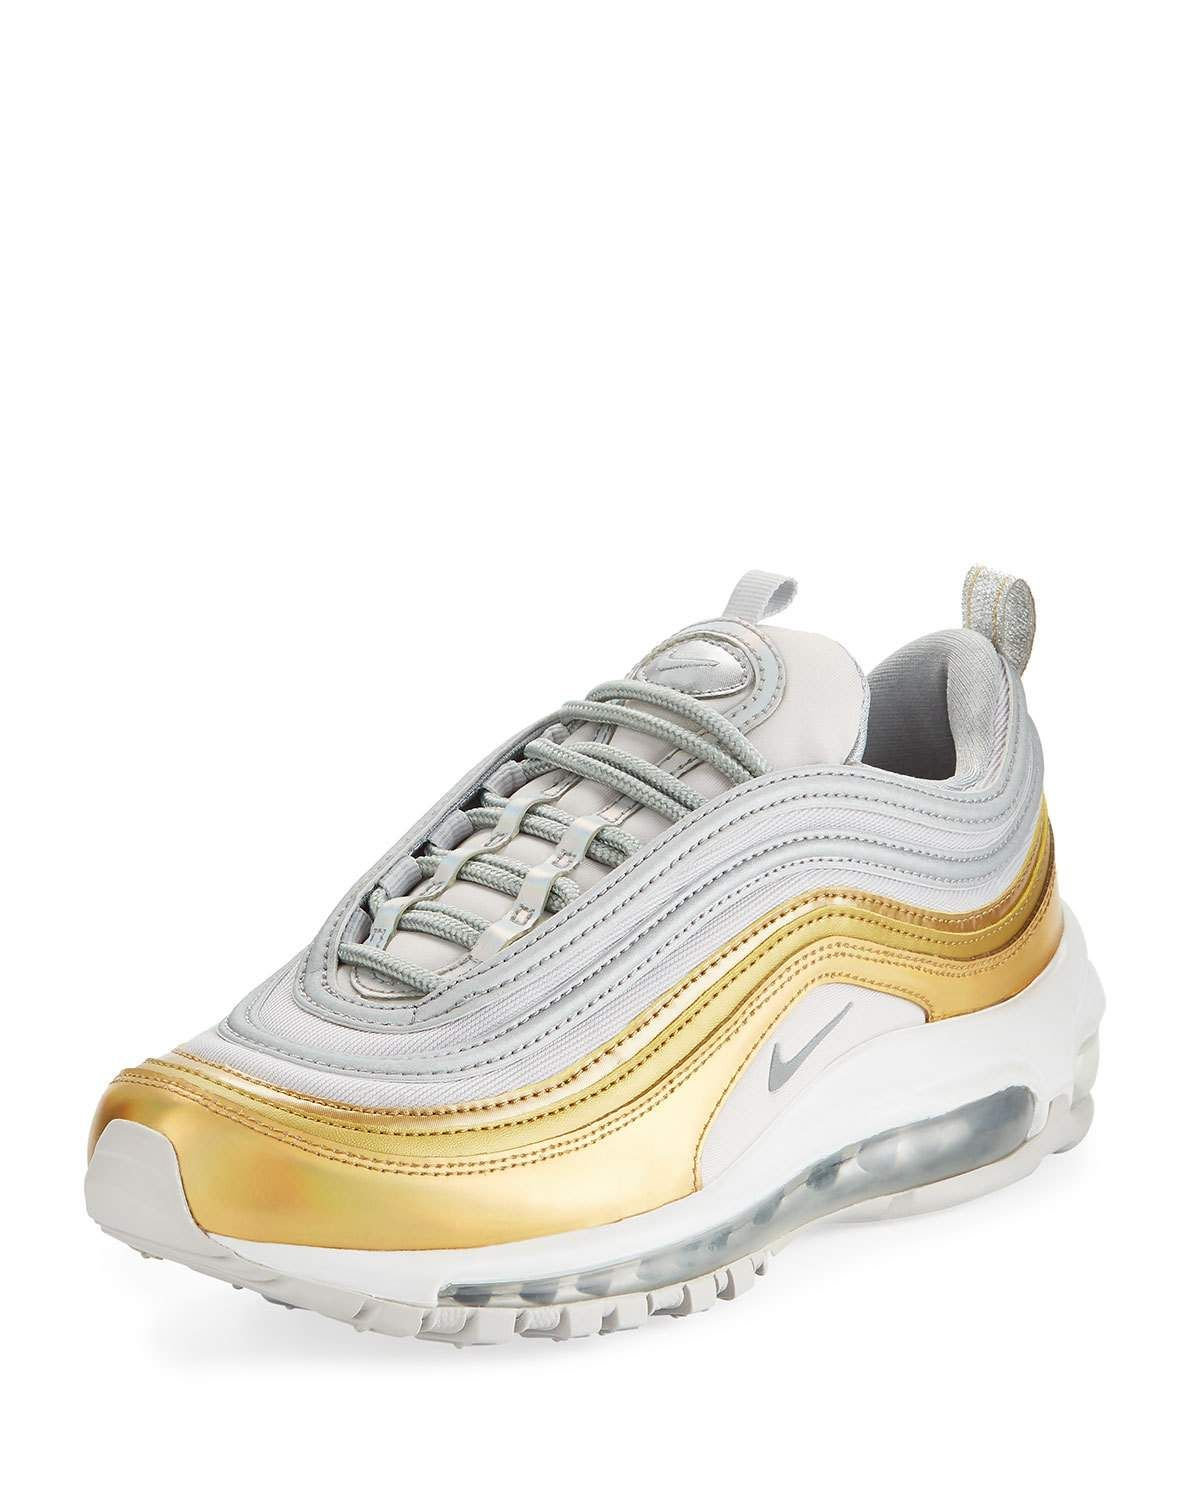 buy popular 03831 3c8c6 Air Max 97 Special Edition Sneakers